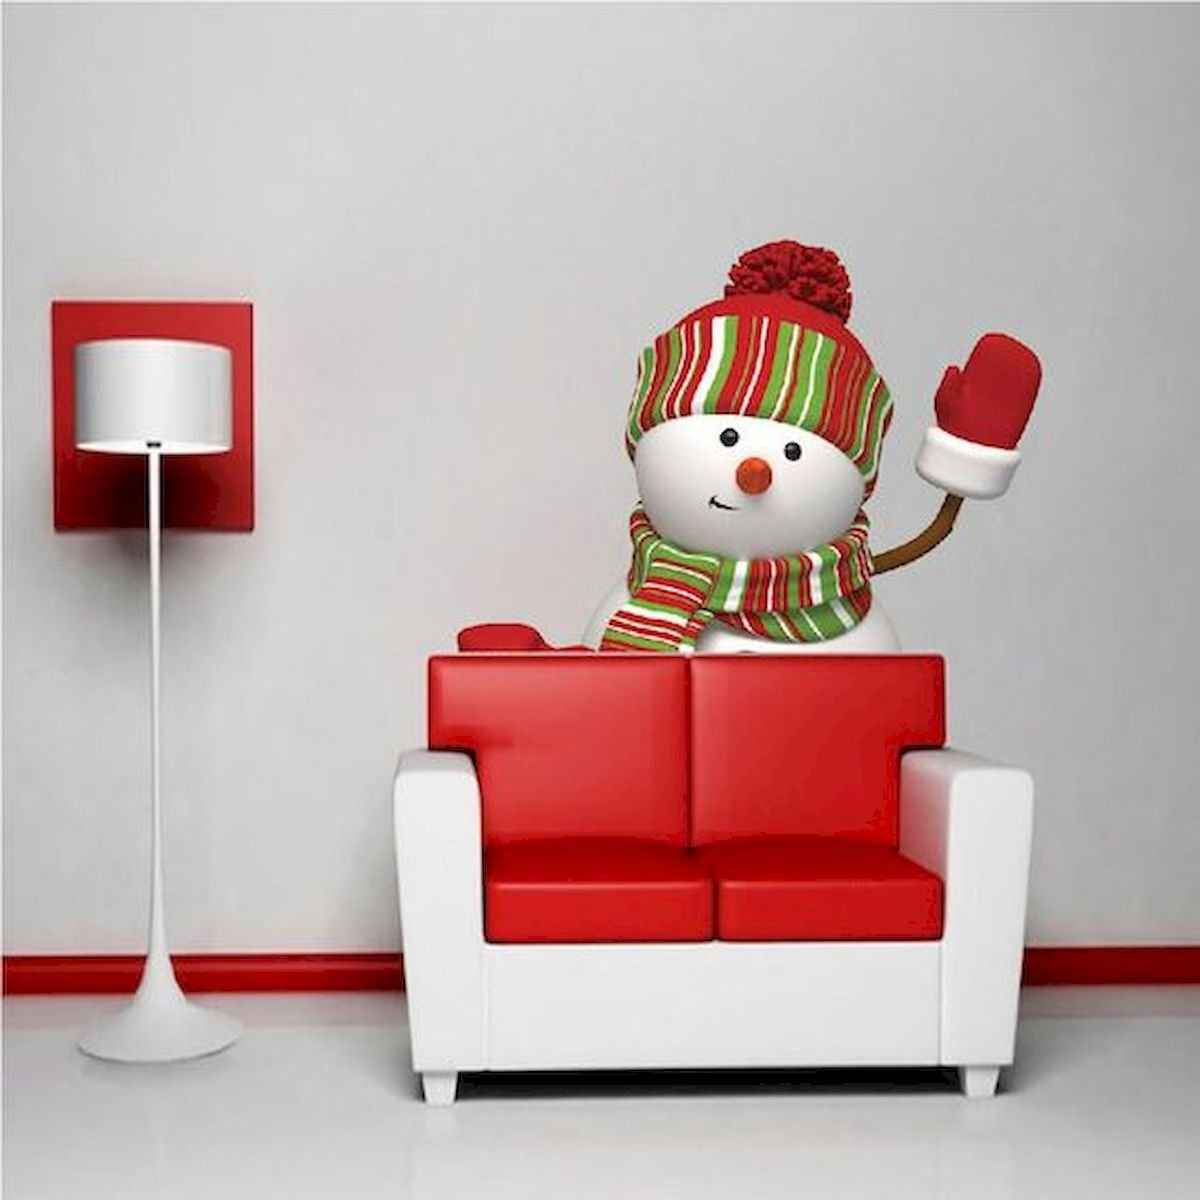 35 awesome apartment christmas decorations ideas (14)